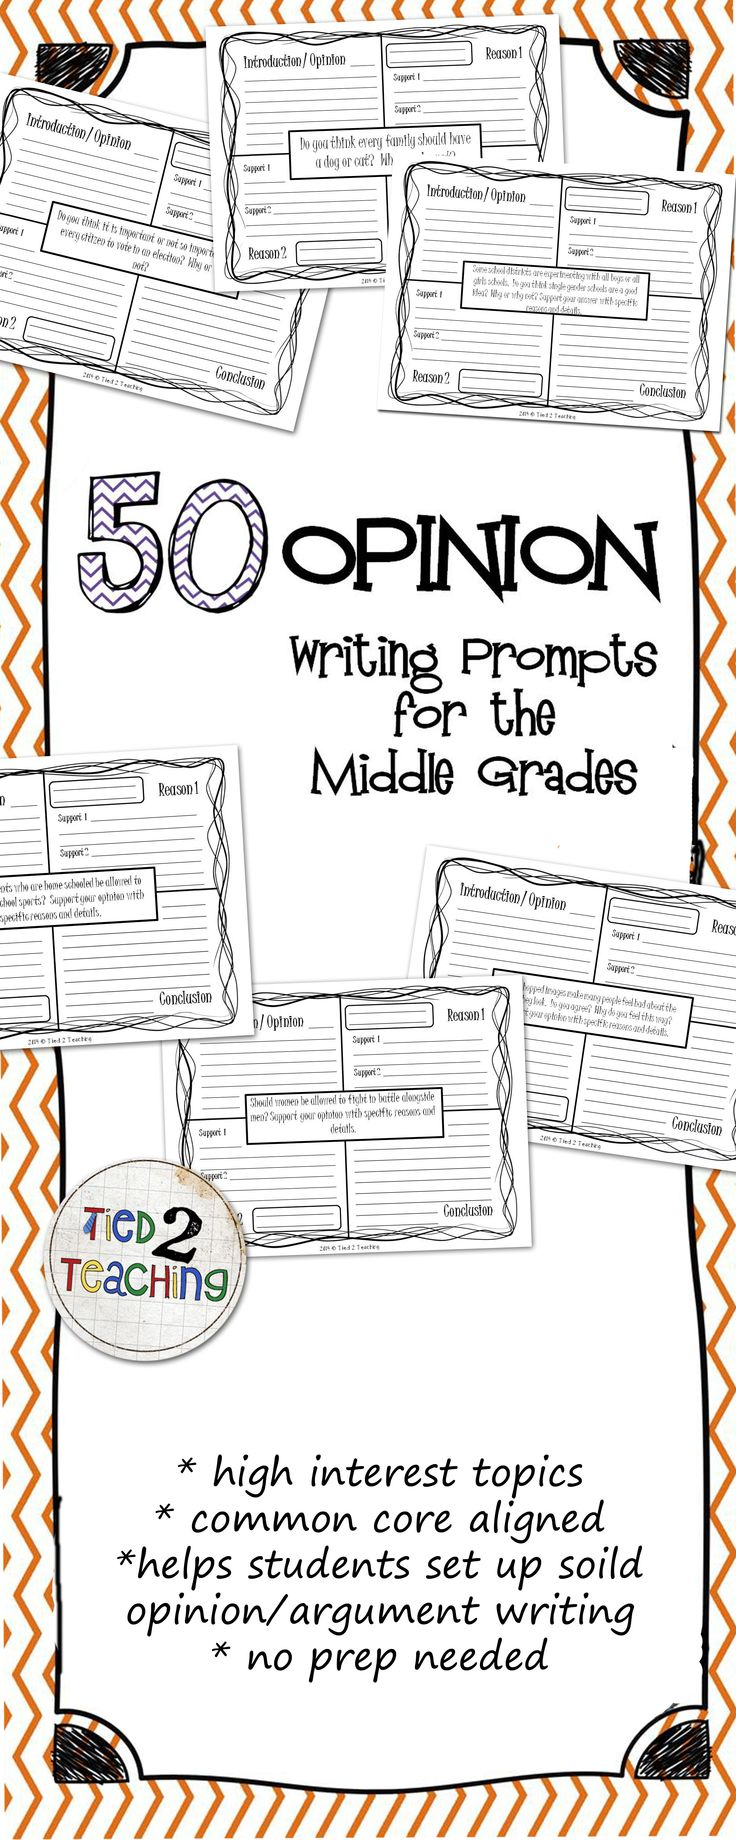 This resource comes with an extensive, Common Core Aligned, 50 Opinion / Argument Writing Prompts for the Middle Grades. Perfect for helping students organize their thinking as they structure and format their opinion and argument writing, these 4-square prompts provide a number of high interest topics to capture students interest and challenge their thinking. 50 Opinion / Argument Writing Prompts on 4-Square organizers